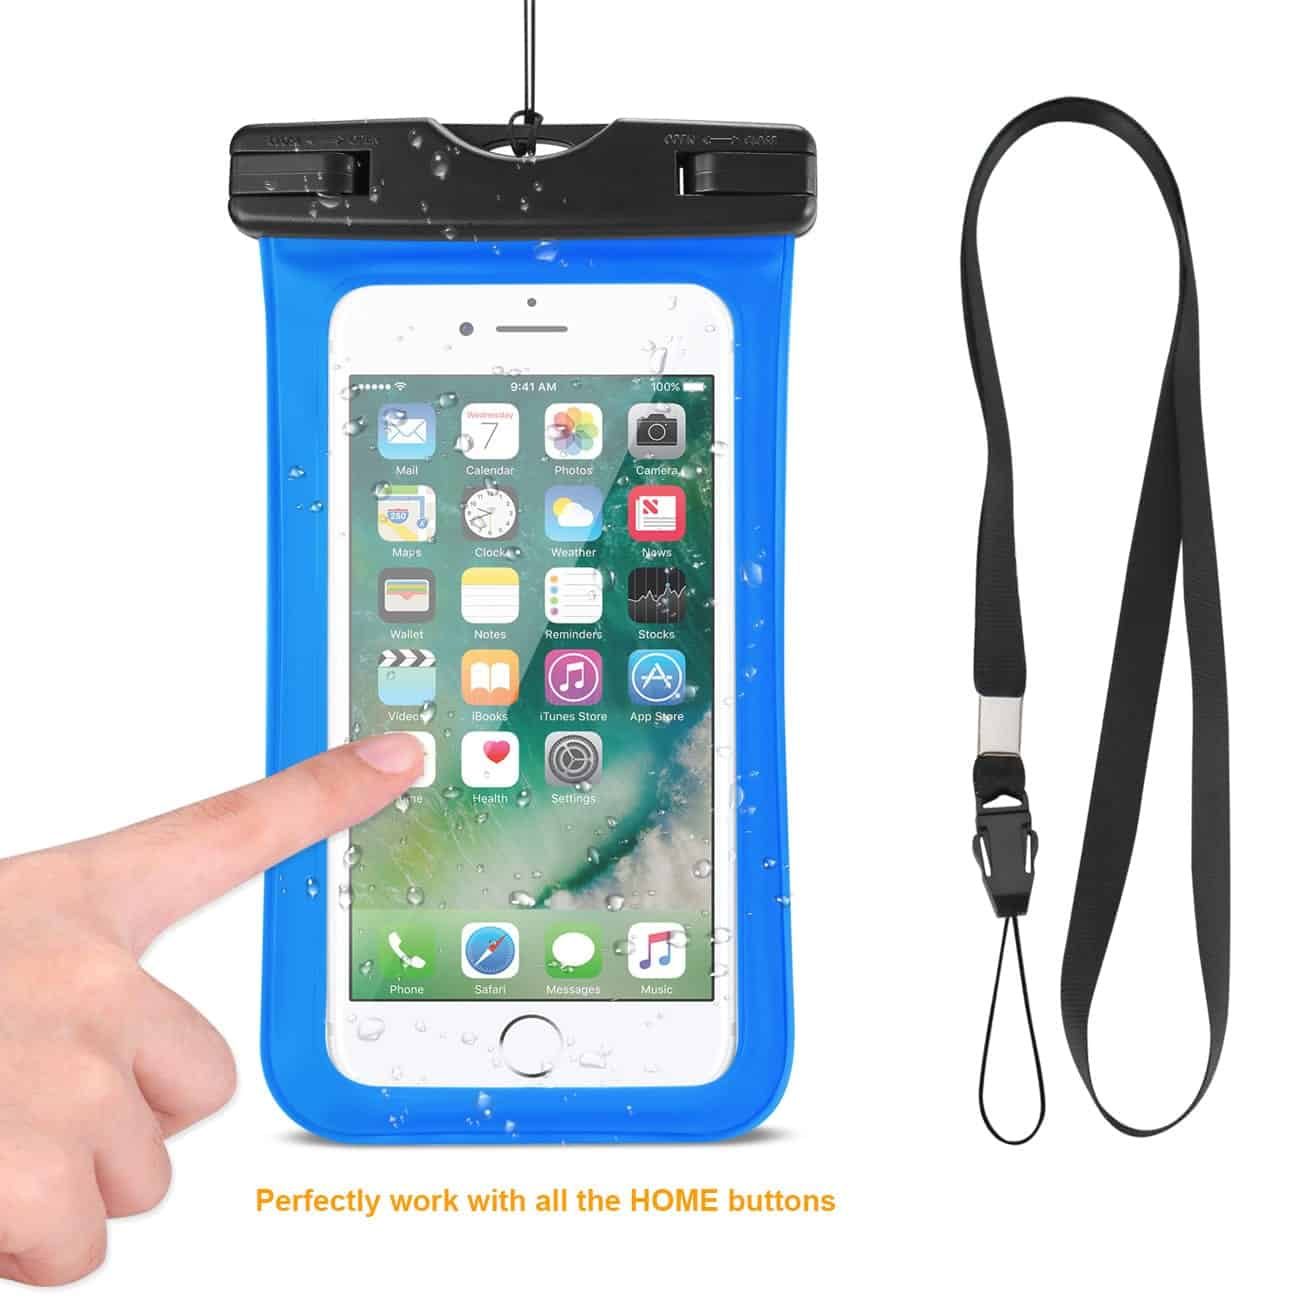 WATERPROOF CASE FOR IPHONE 6 PLUS/ 6S PLUS/ 7 PLUS OR 5.5 INCH DEVICES WITH WRIST STRAP IN BLUE